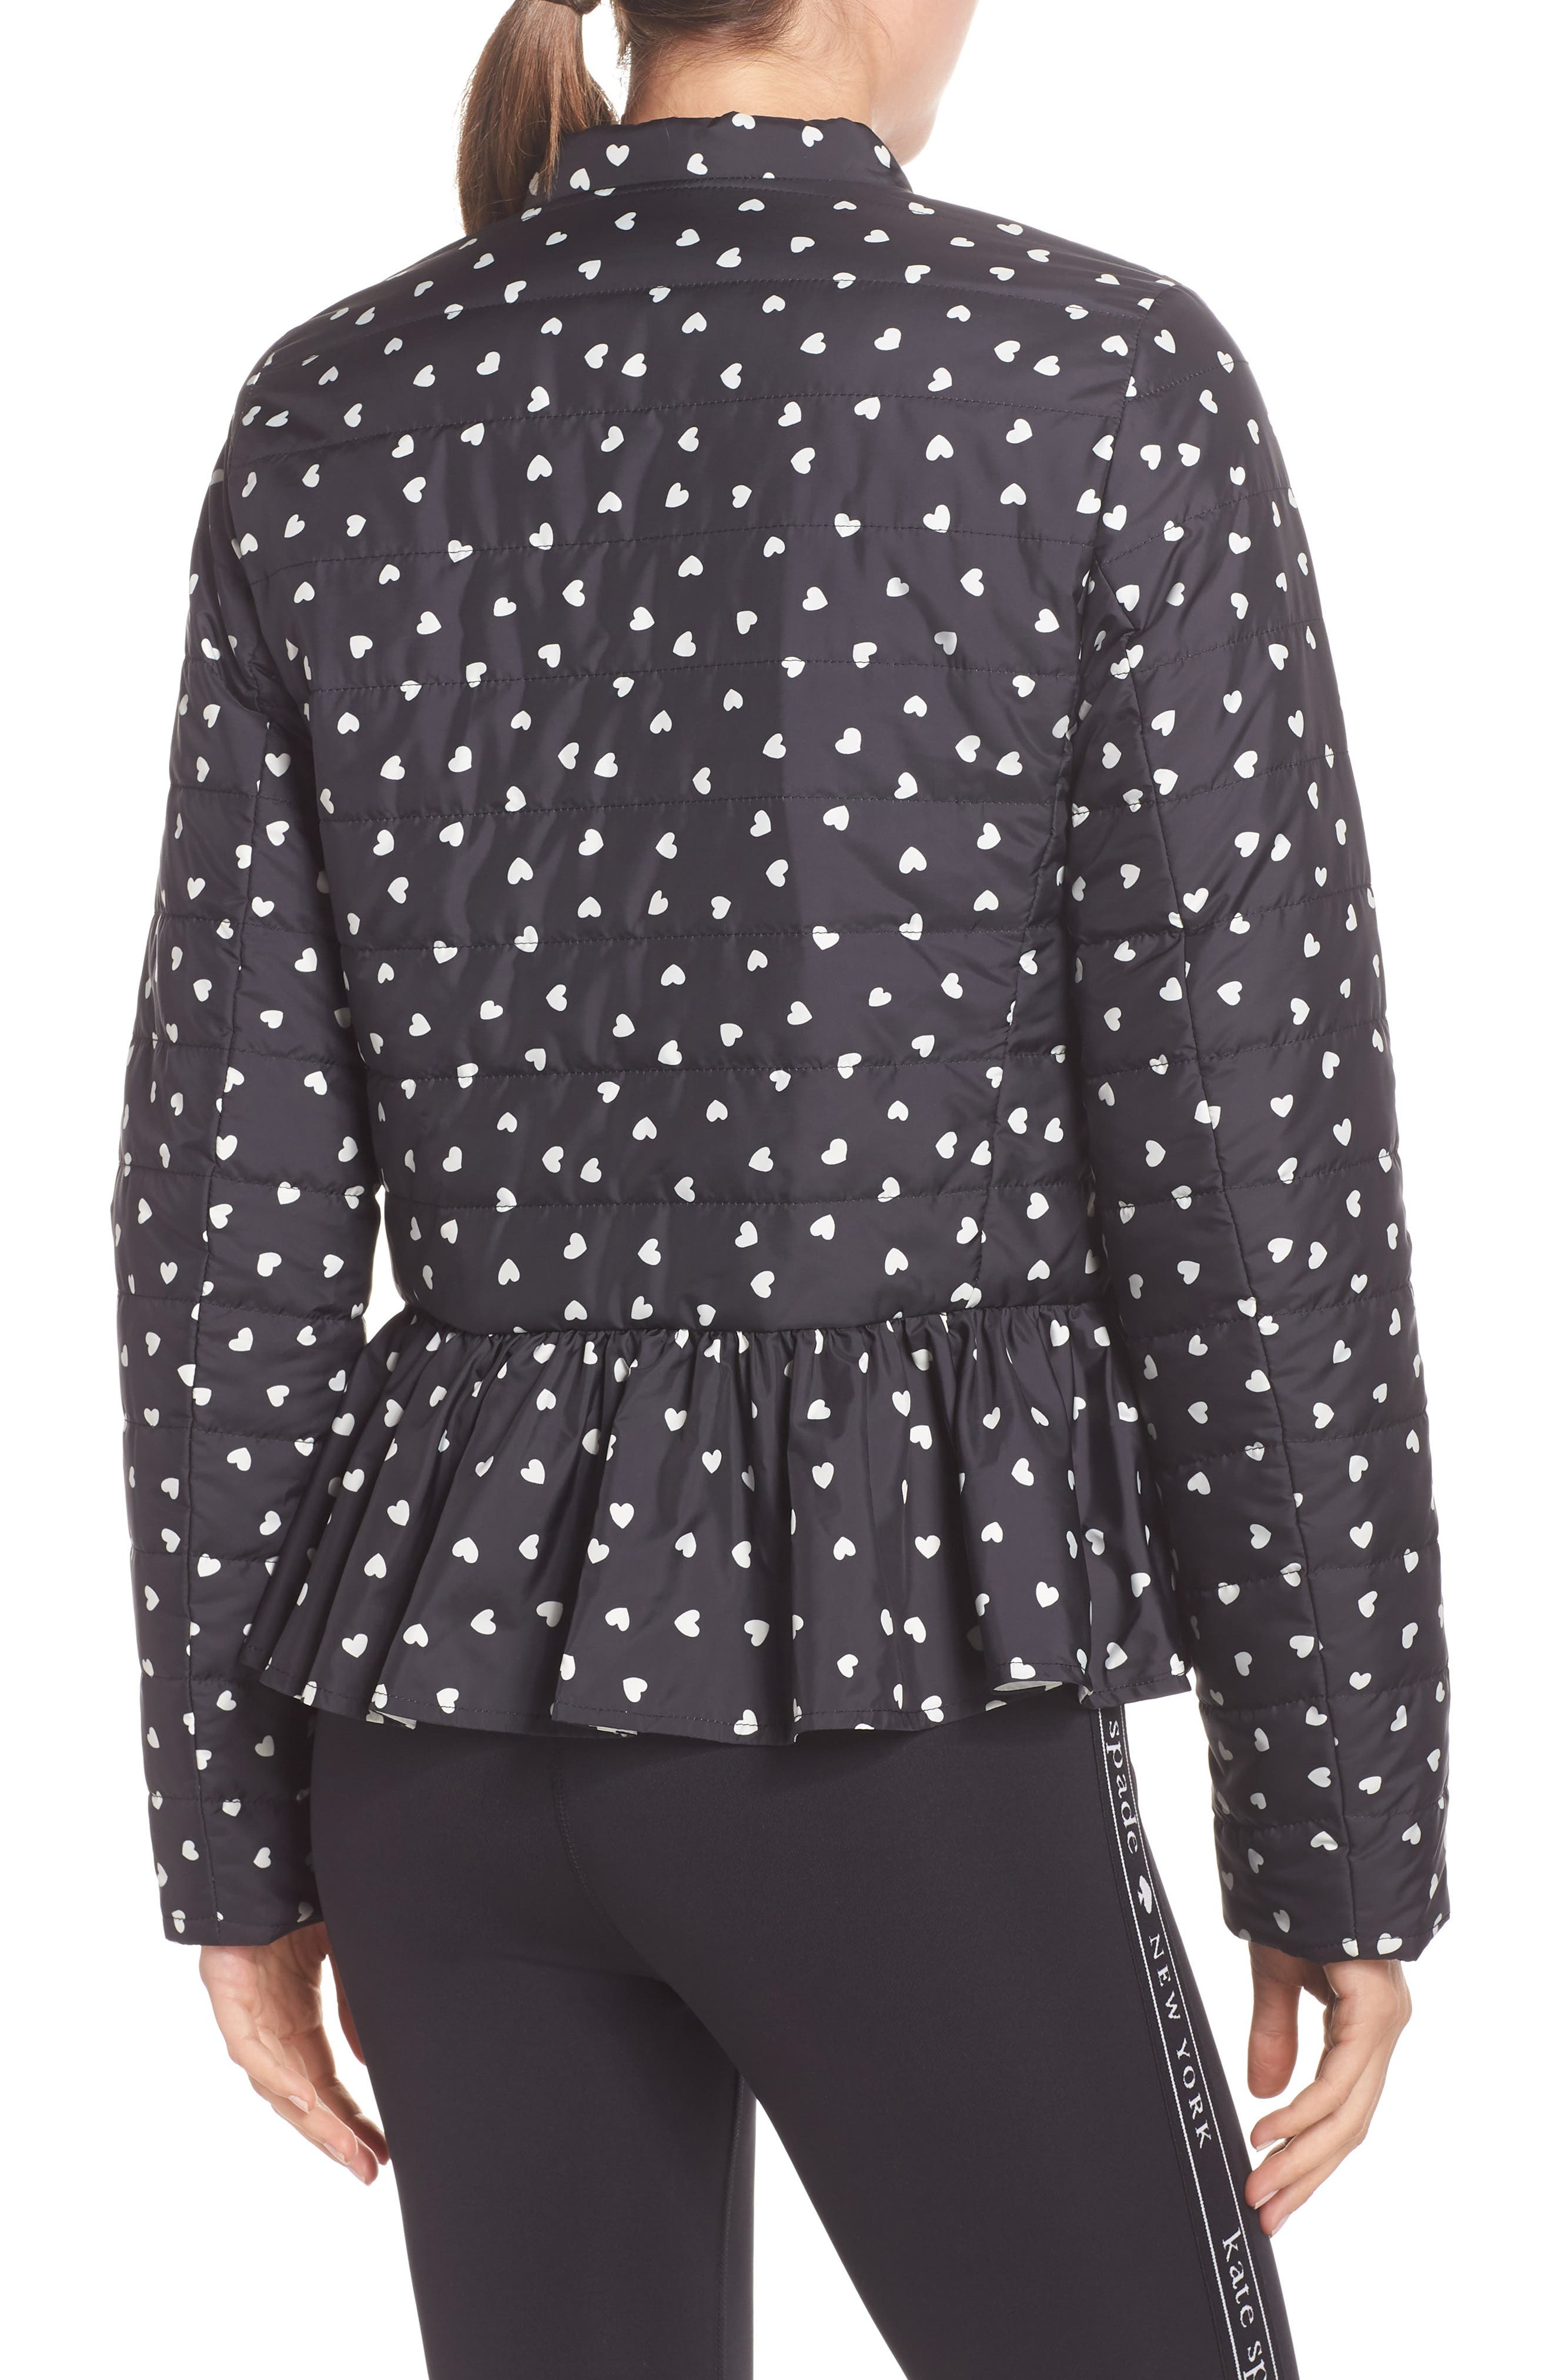 KATE SPADE NEW YORK,                             ruffle reversible quilted jacket,                             Alternate thumbnail 3, color,                             001